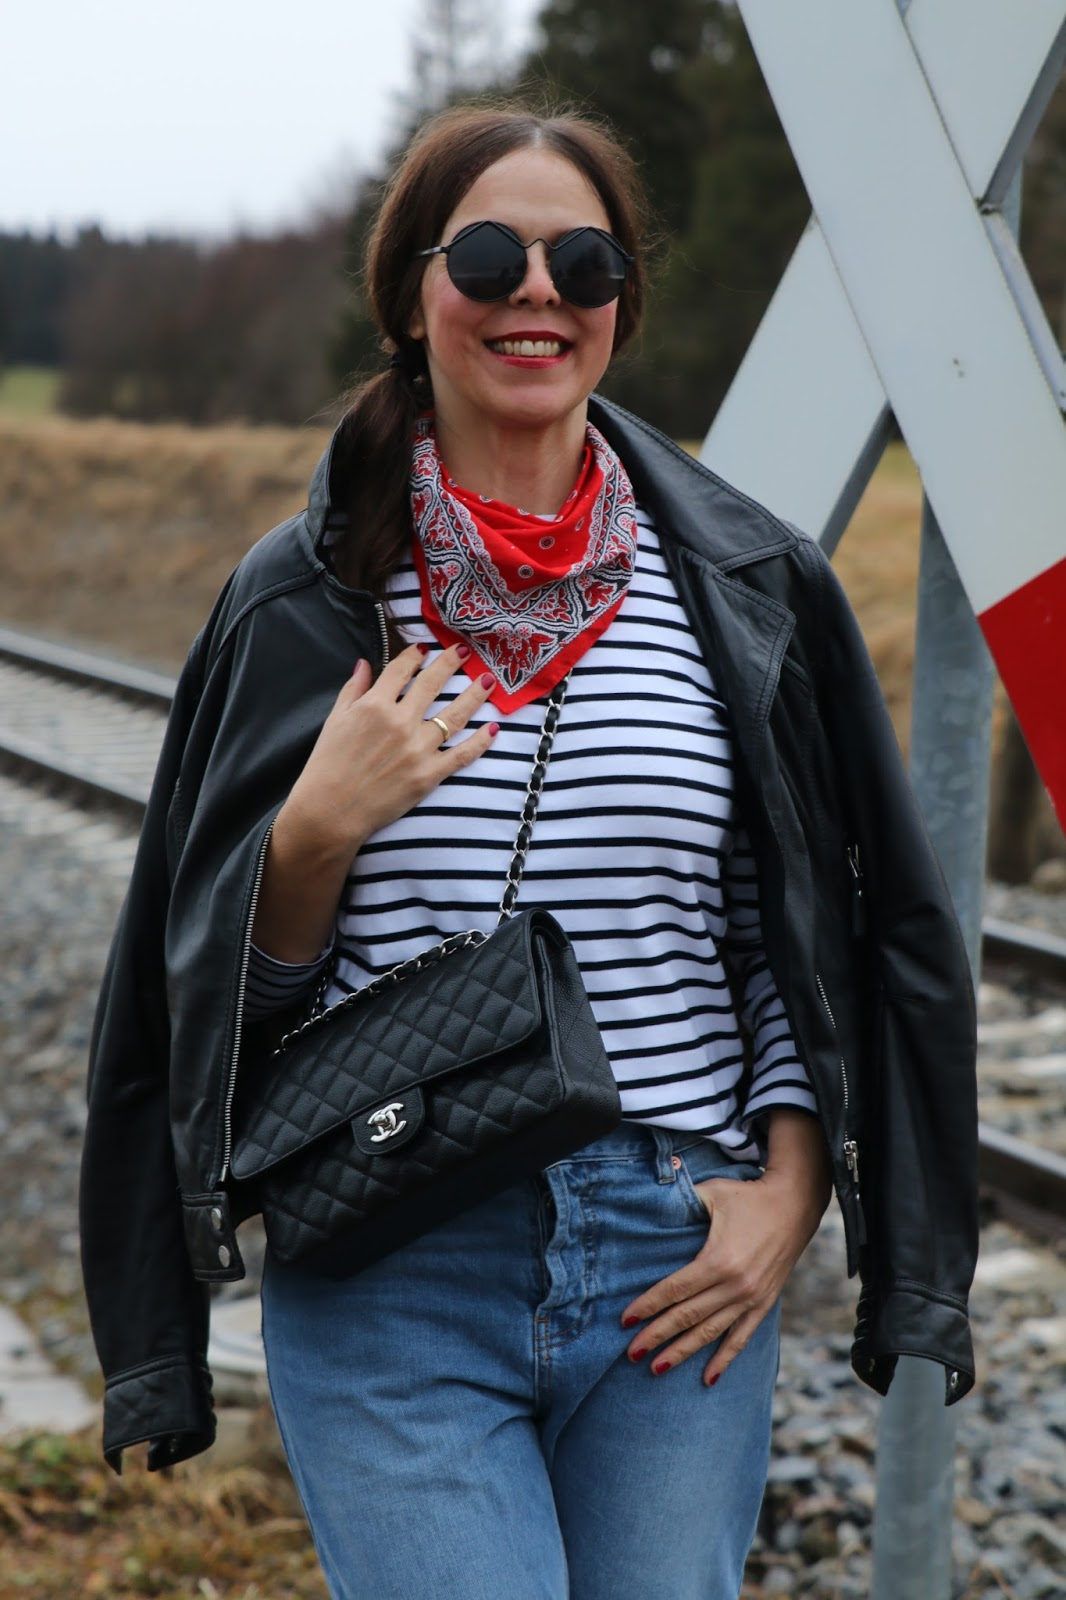 Outfit black leather jacket, striped shirt, red neckerchief, blue mom jeans, black boots